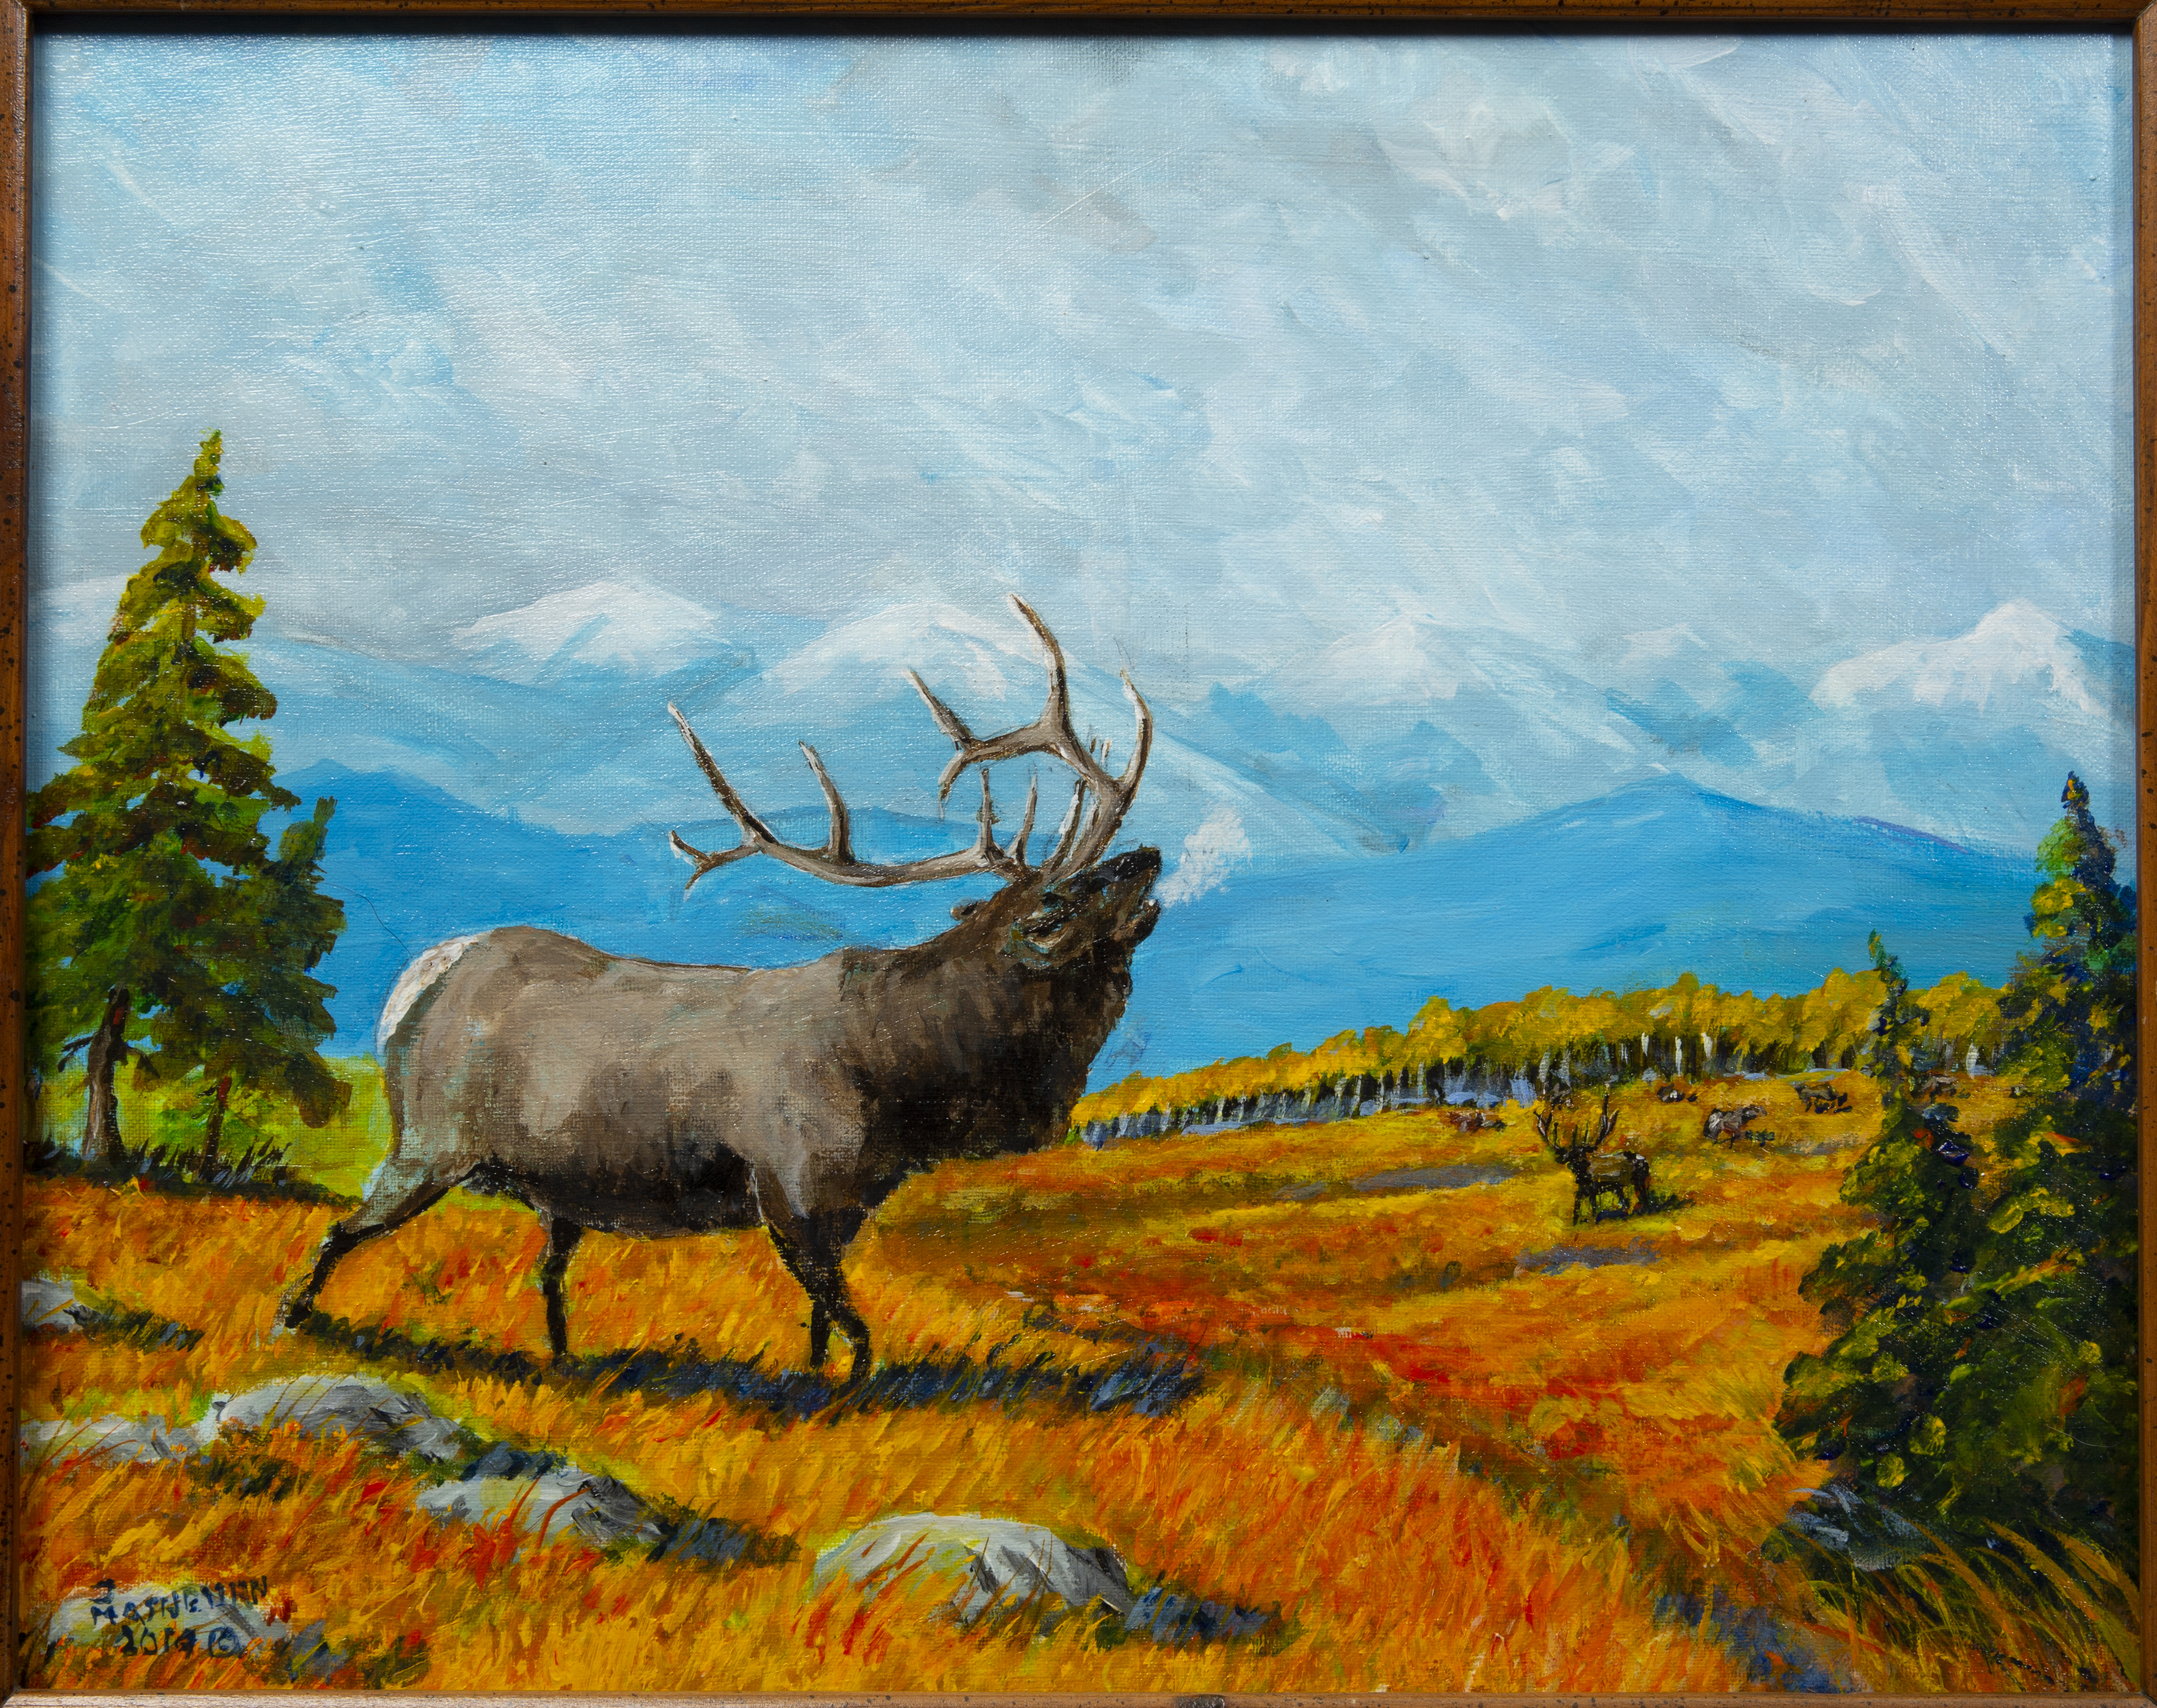 Painting - Rutting - painting of a large male Elk or Deer with a large rack on top his head and appears to be bugling while standing on beautiful orange, yellow and red grass with other Elk/Deer in the background.